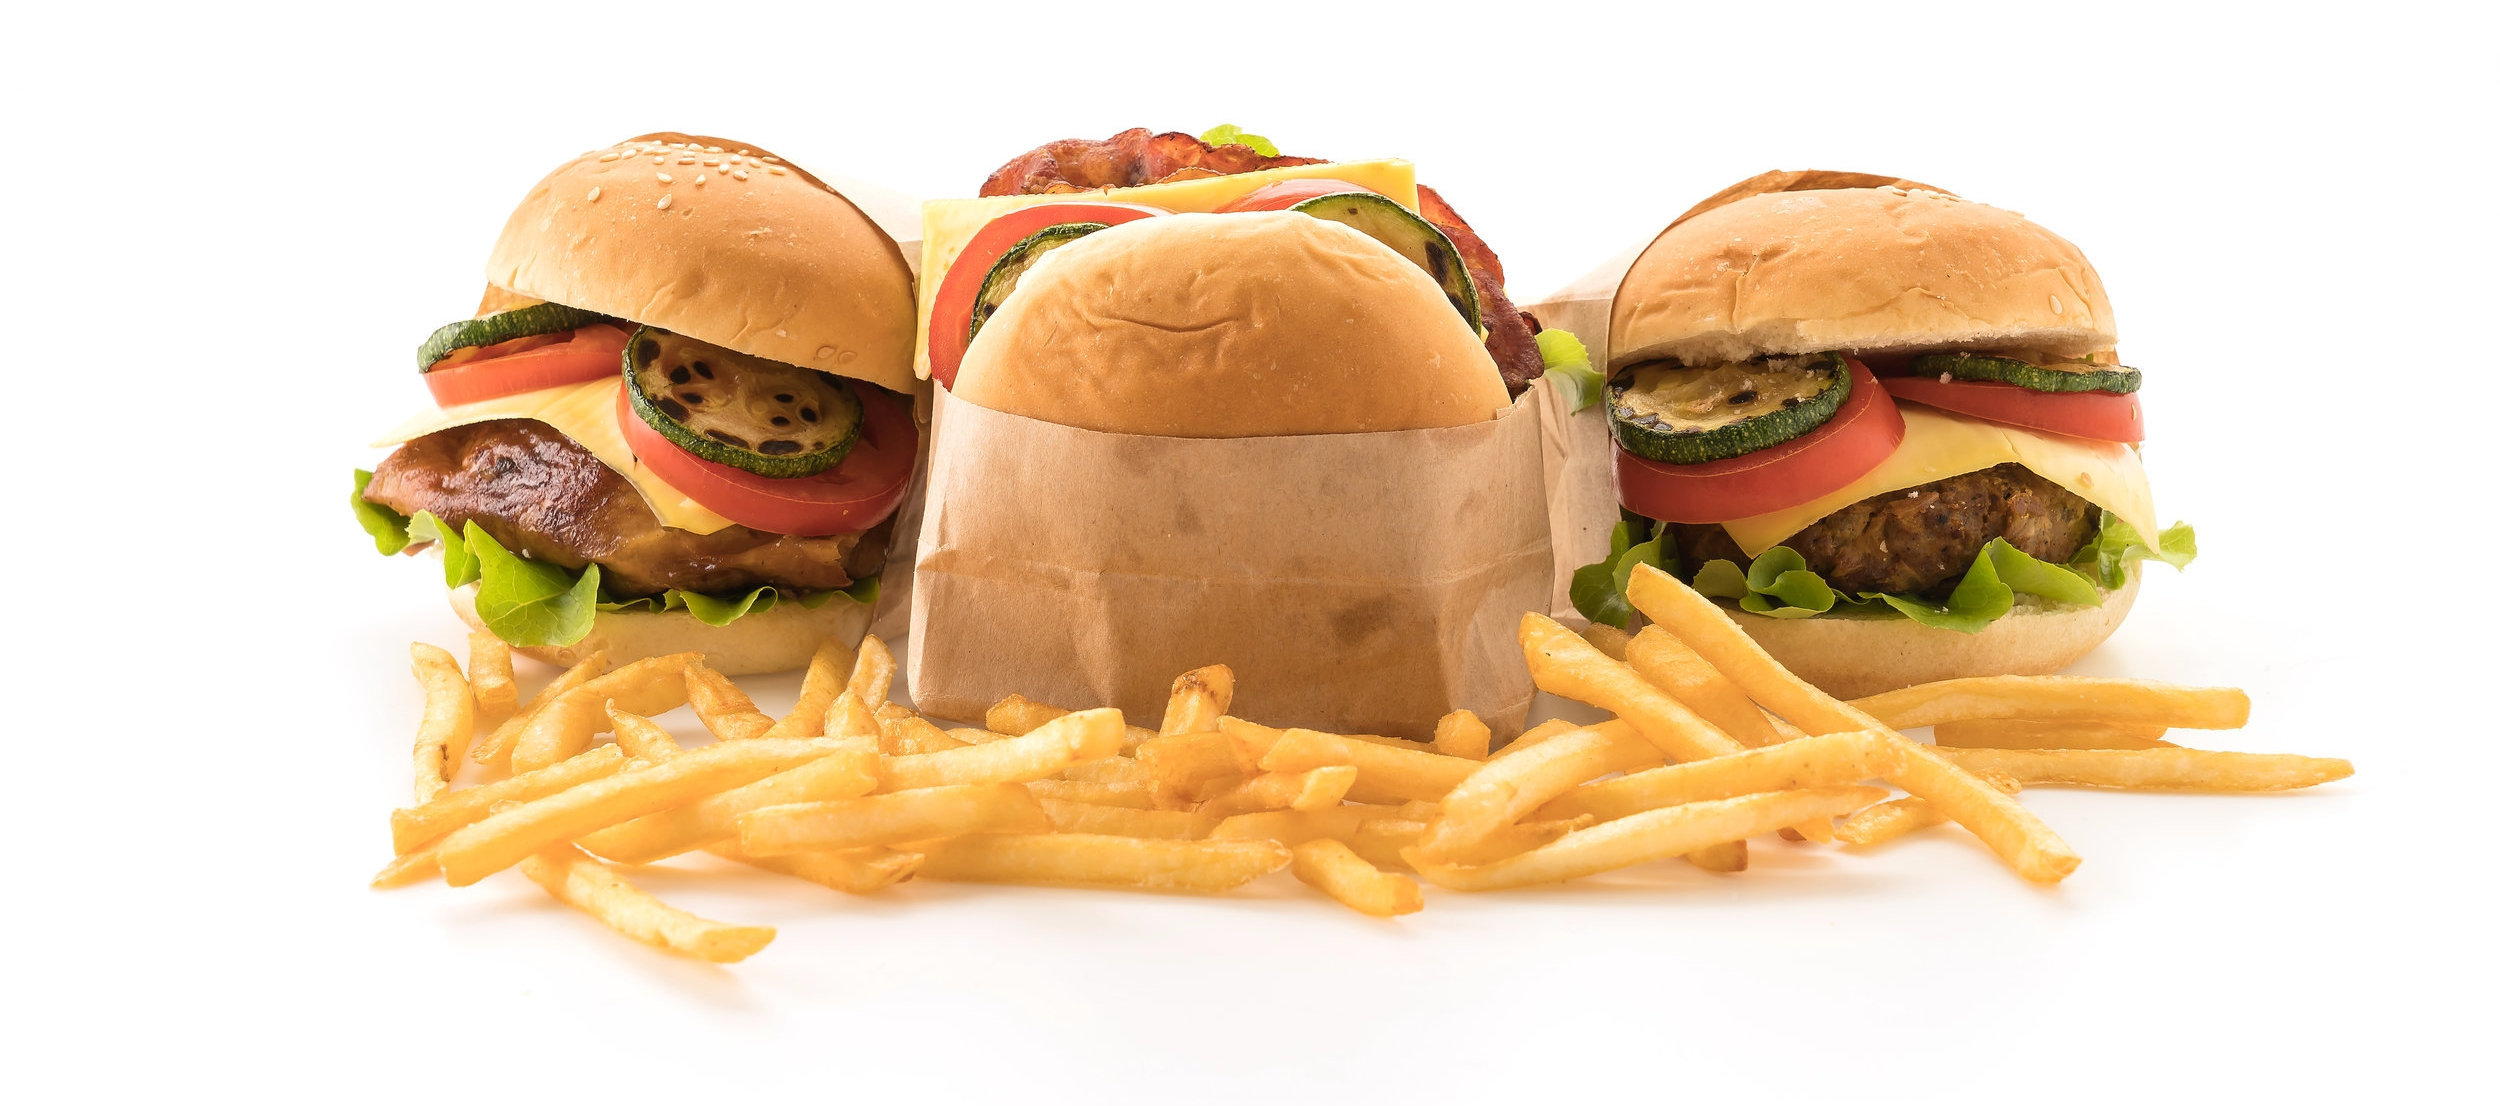 fast food and junk food concept 4.jpg